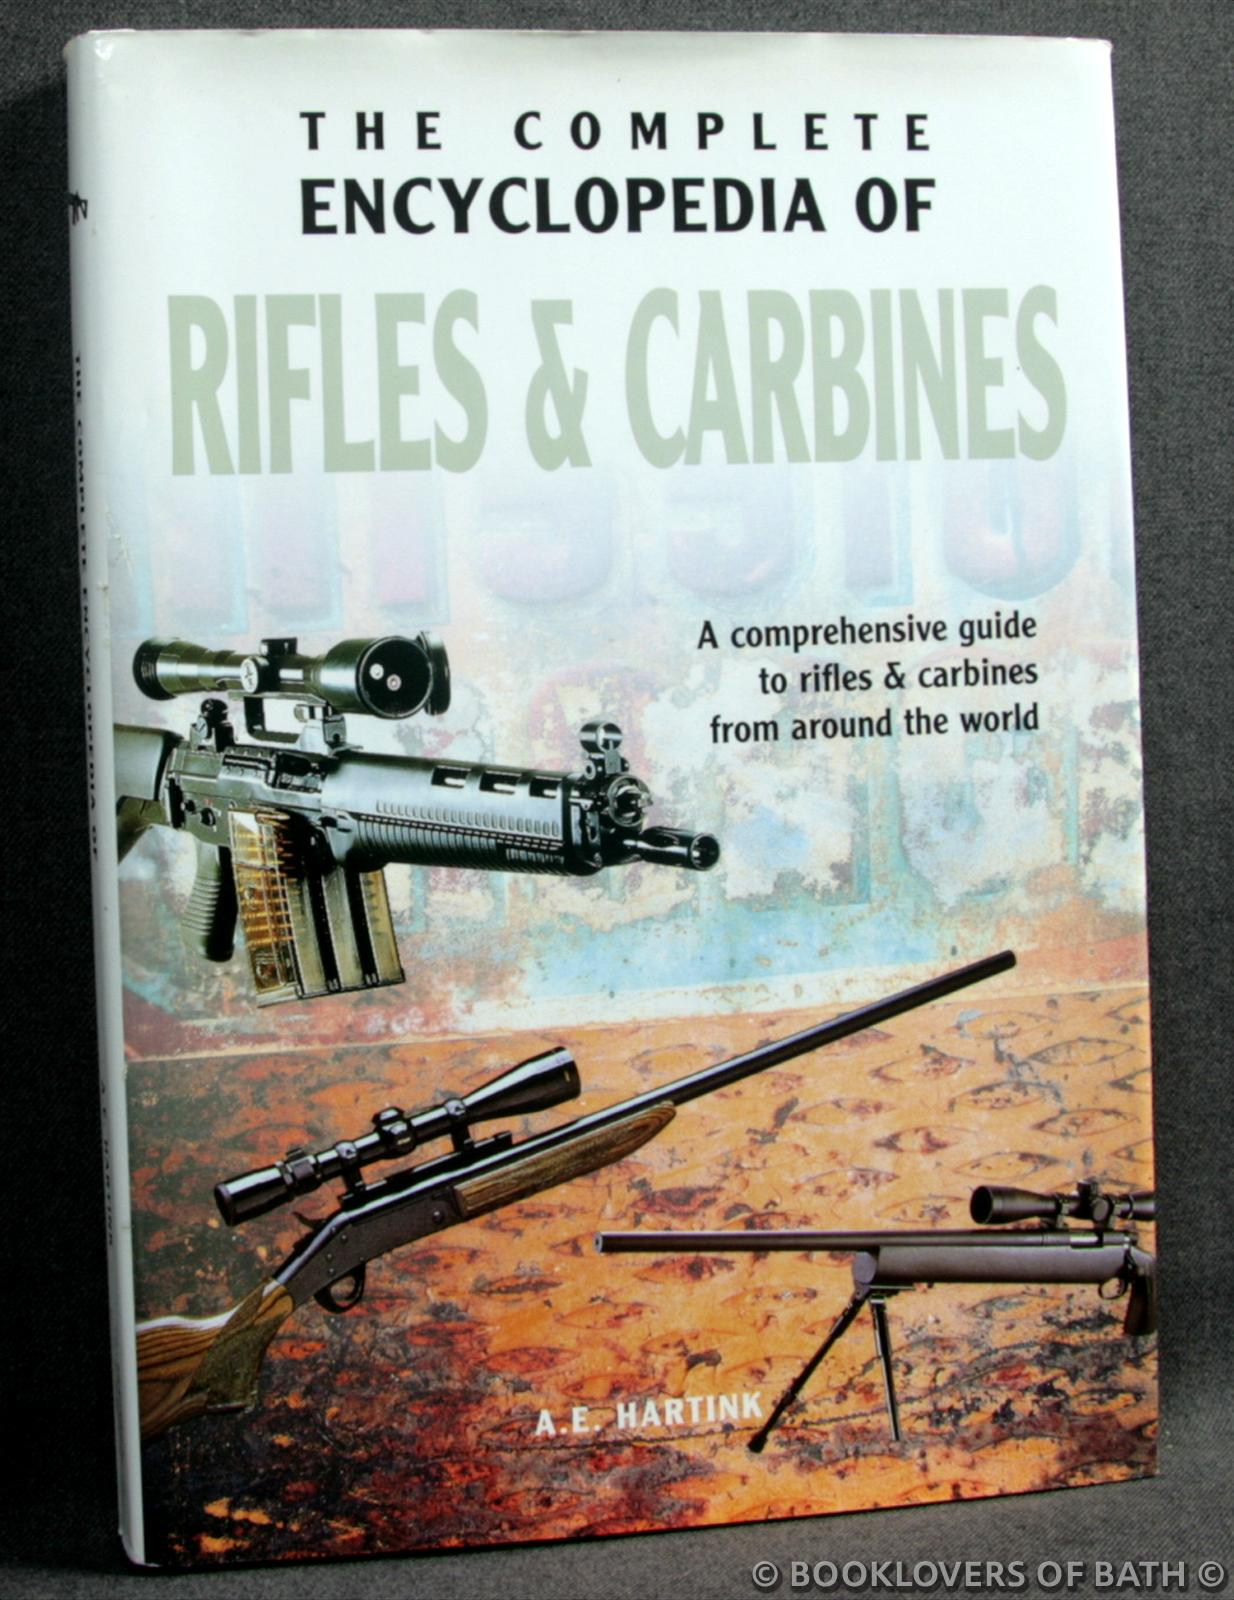 The Complete Encyclopedia of Rifles & Carbines - A. E. Hartink